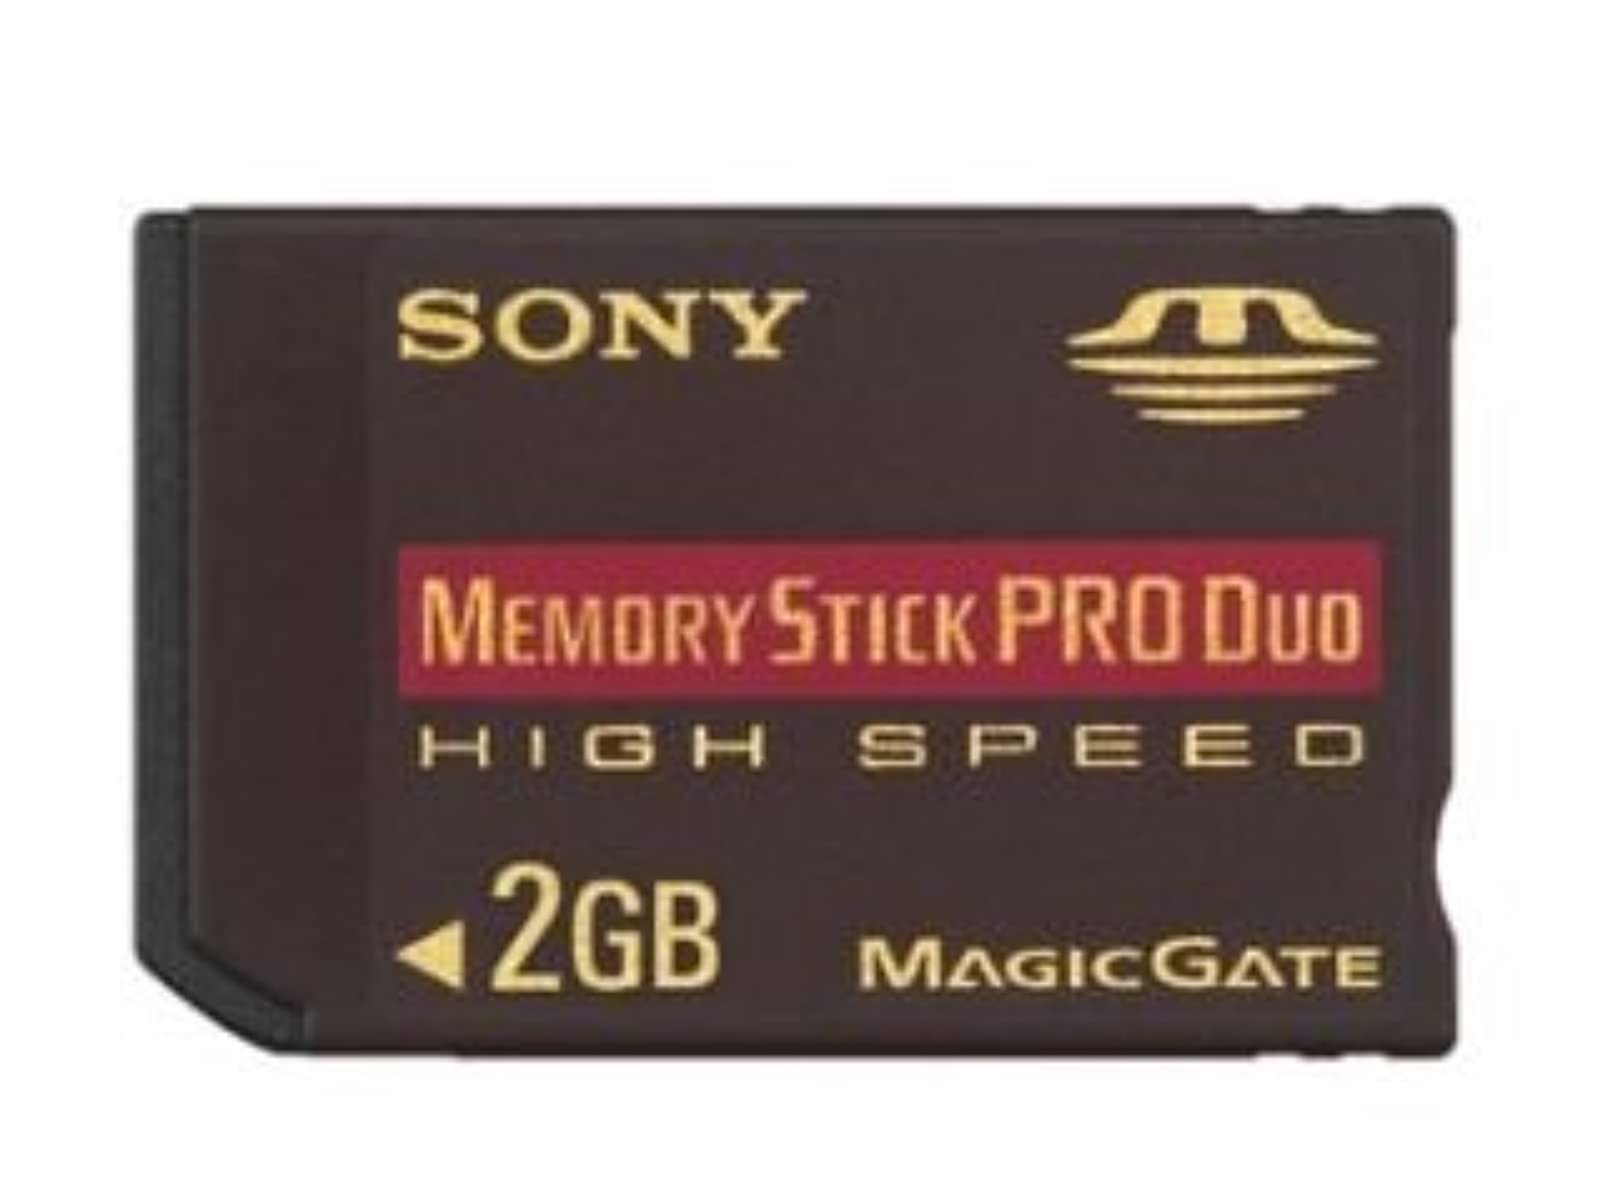 2GB Pro Duo High Speed Memory Stick PSP